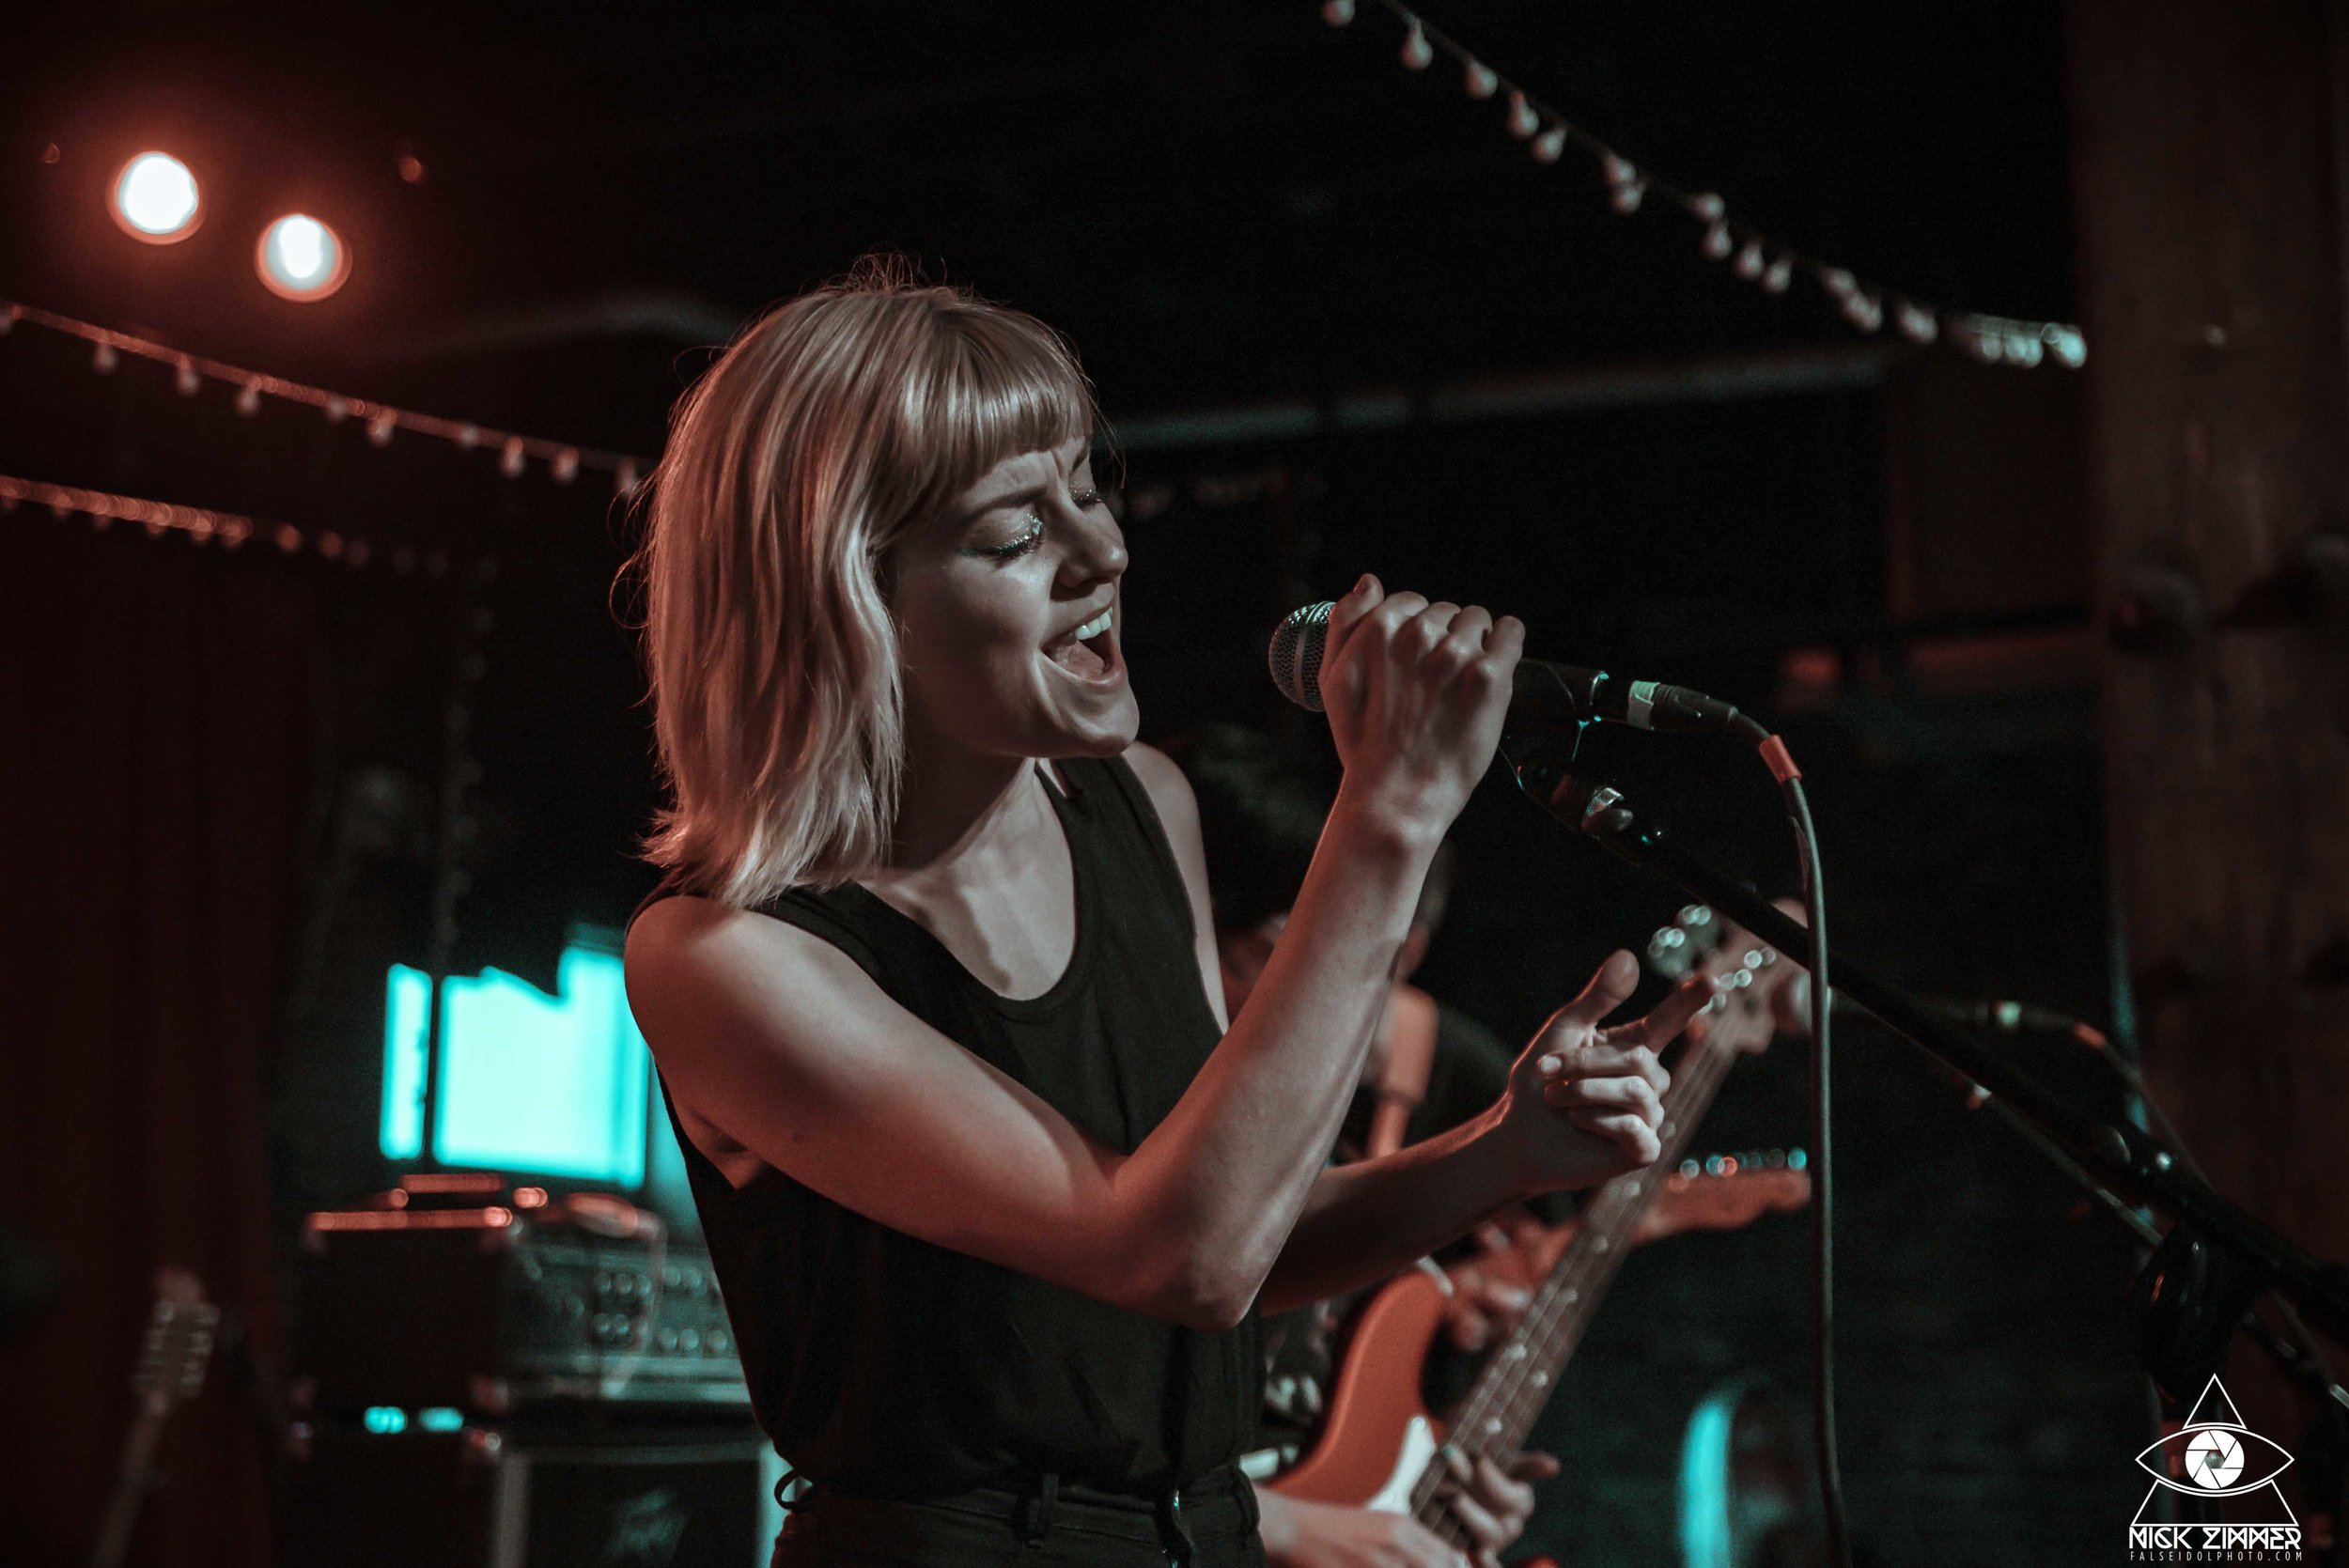 1jettybones.mercylounge.nickzimmer (1 of 46).jpg